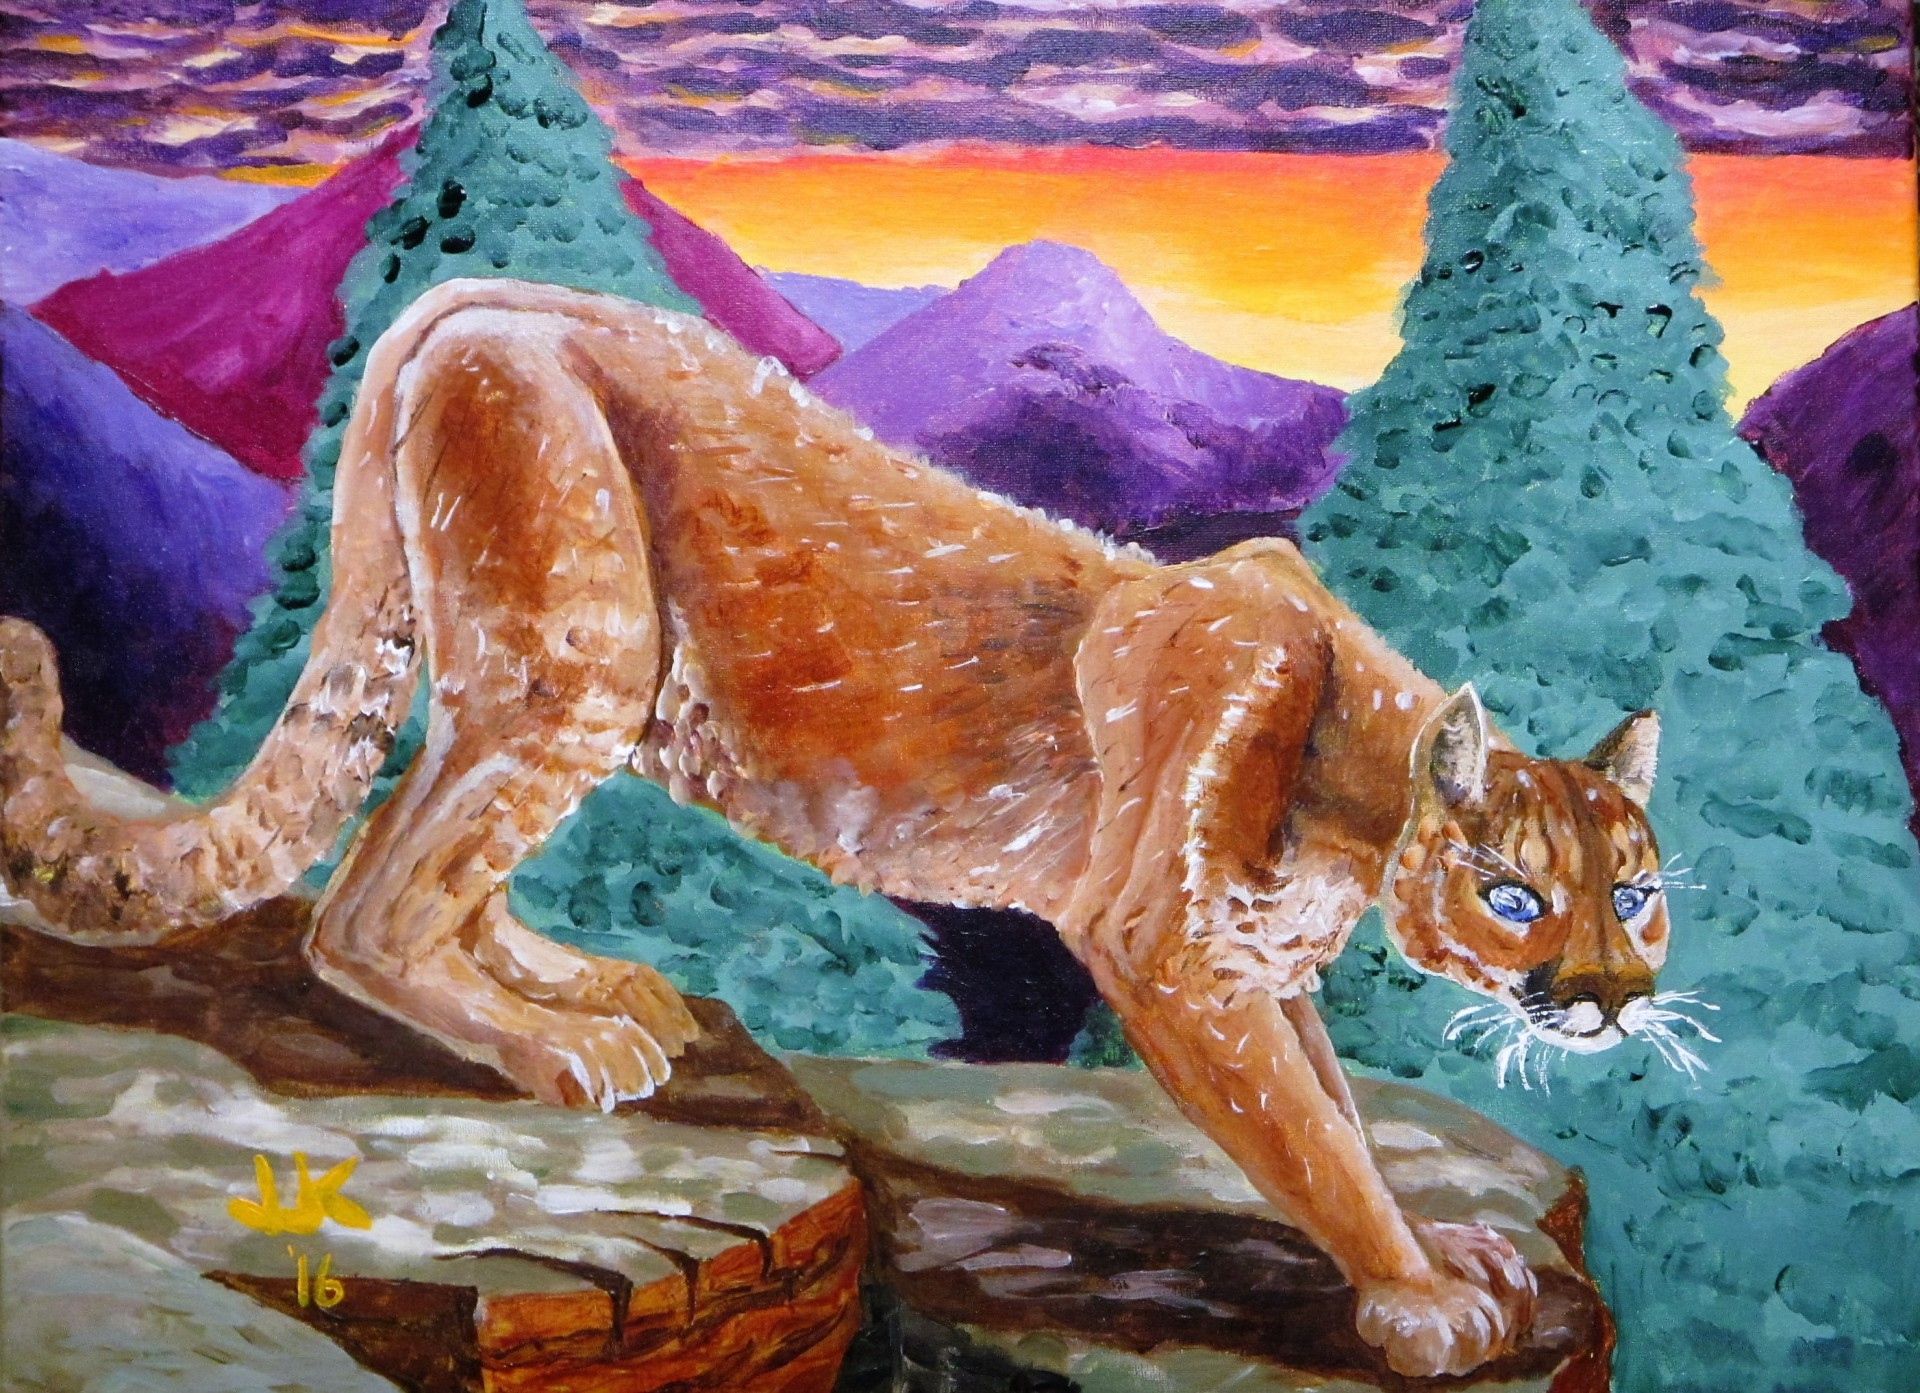 A mountain lion perched on a high rock with a Rocky Mountain sunset in the background.